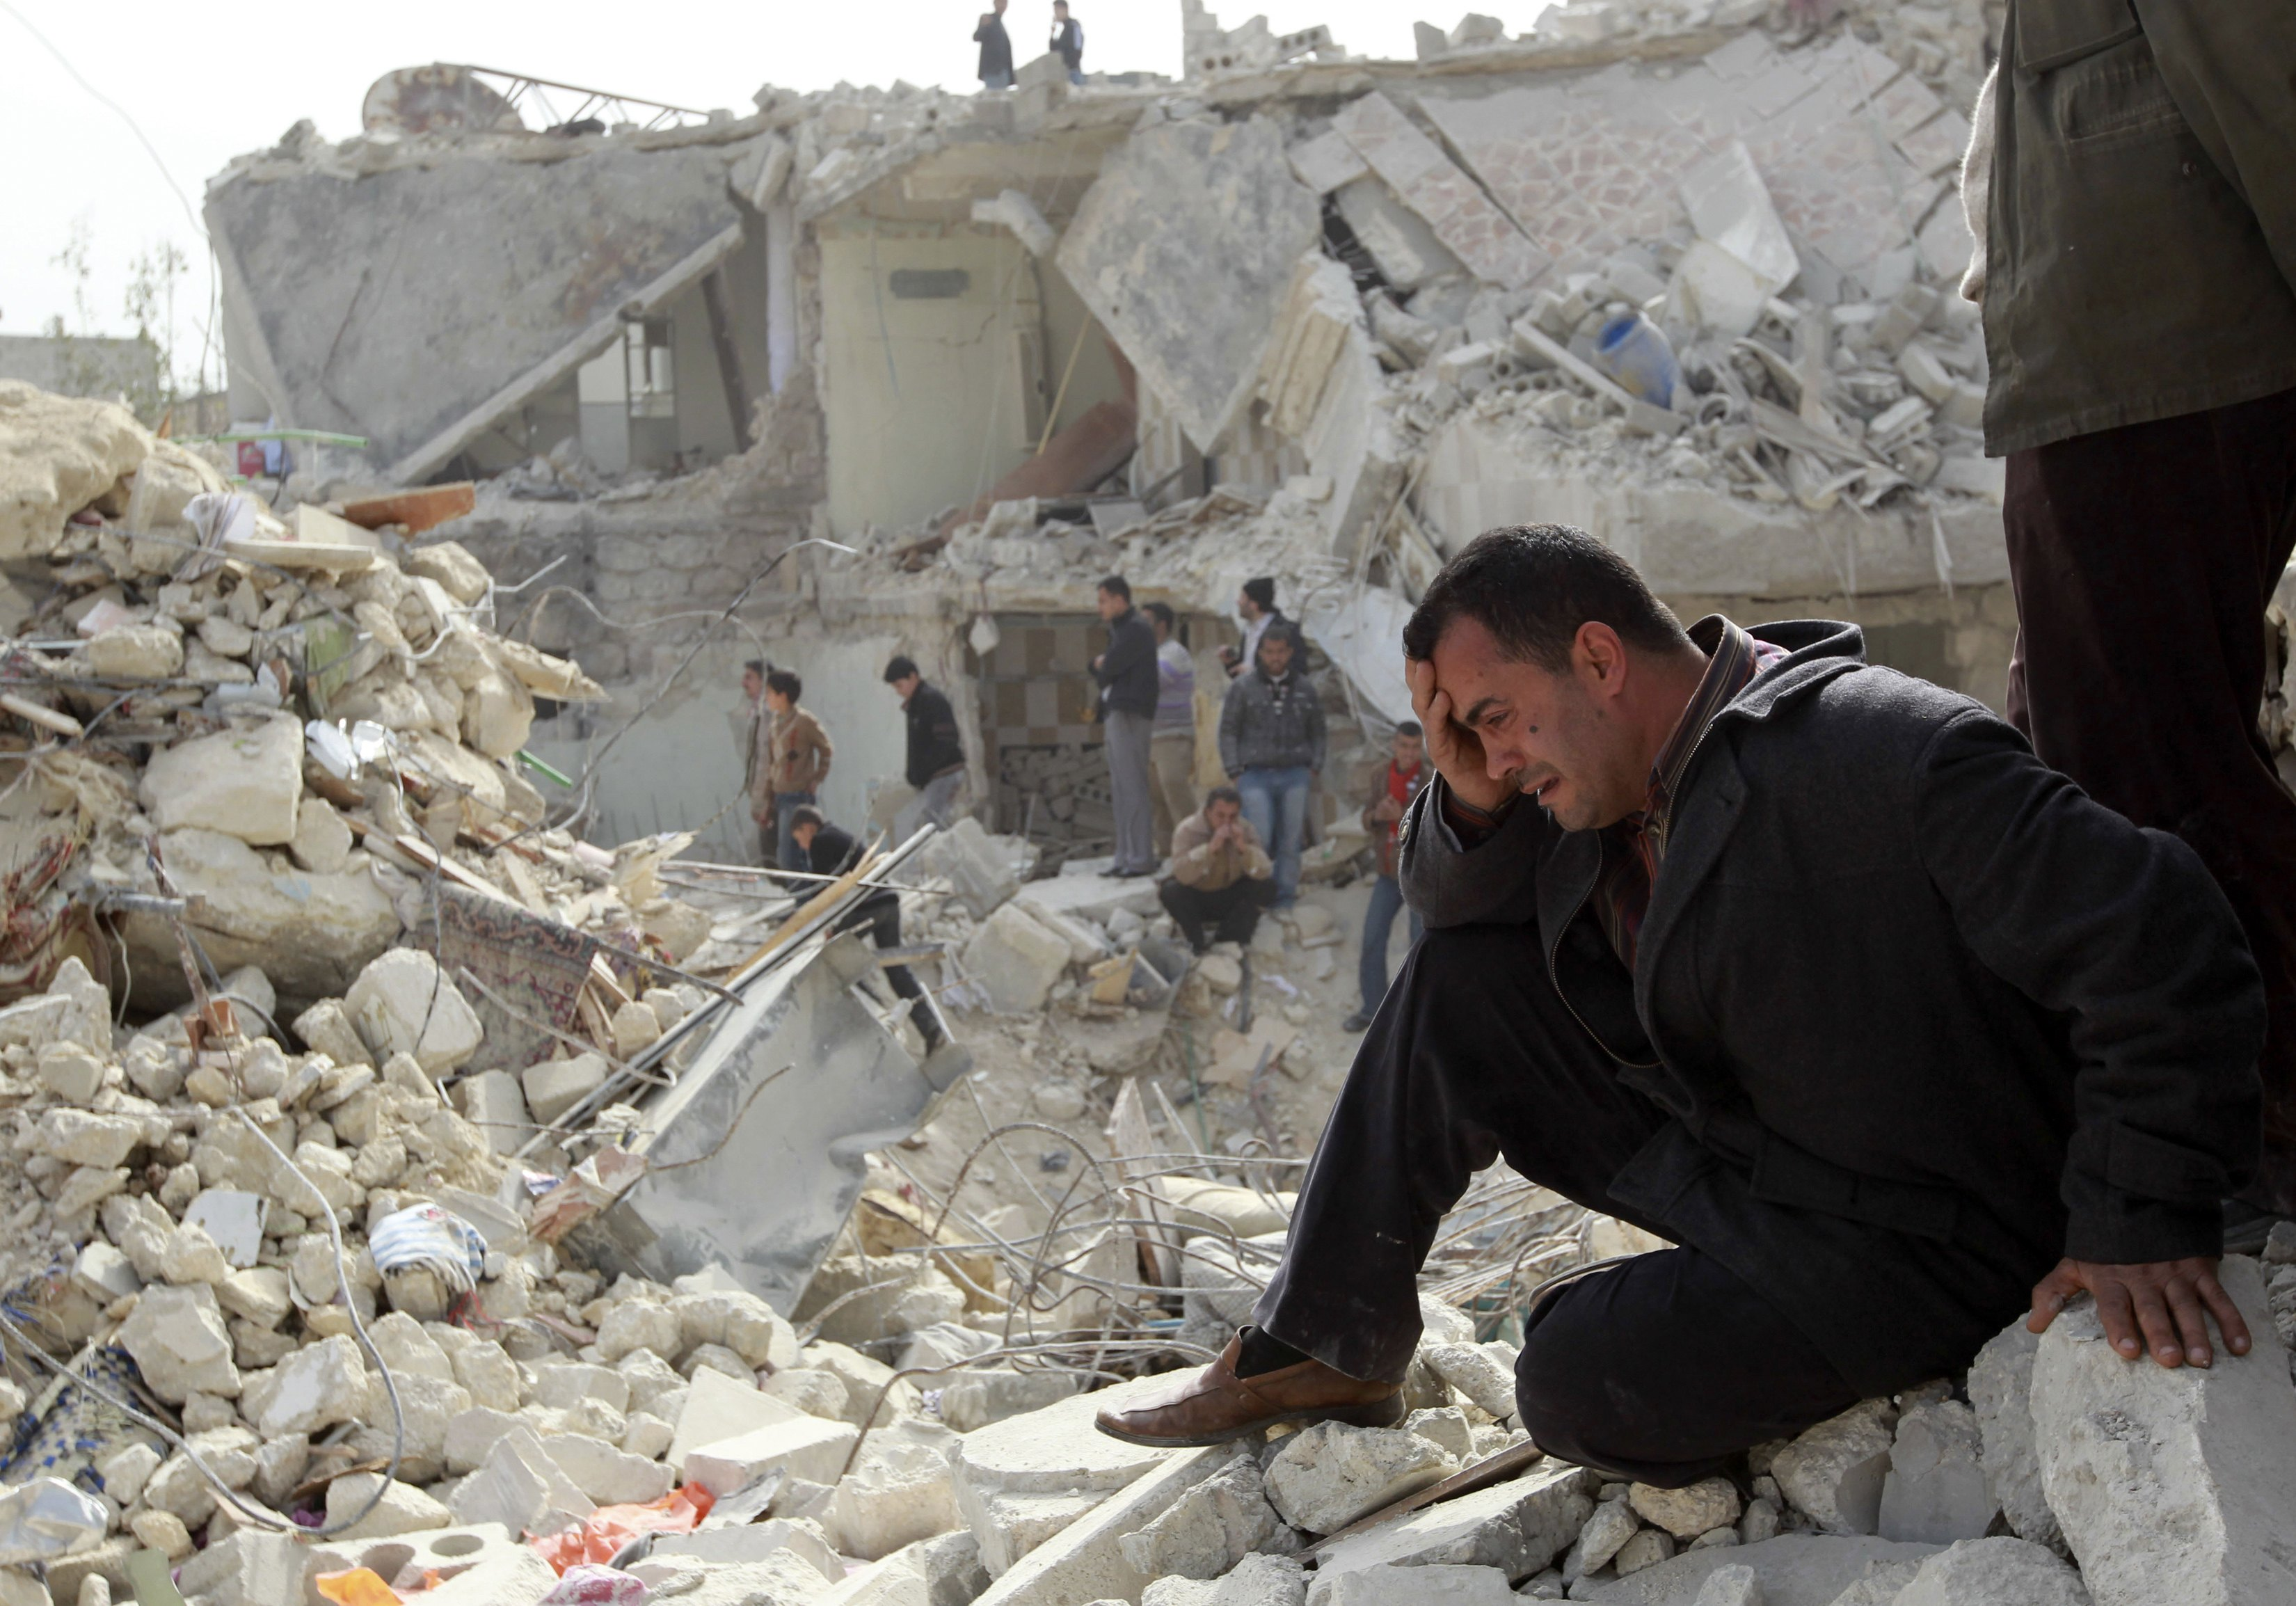 File photo of a man crying in Aleppo